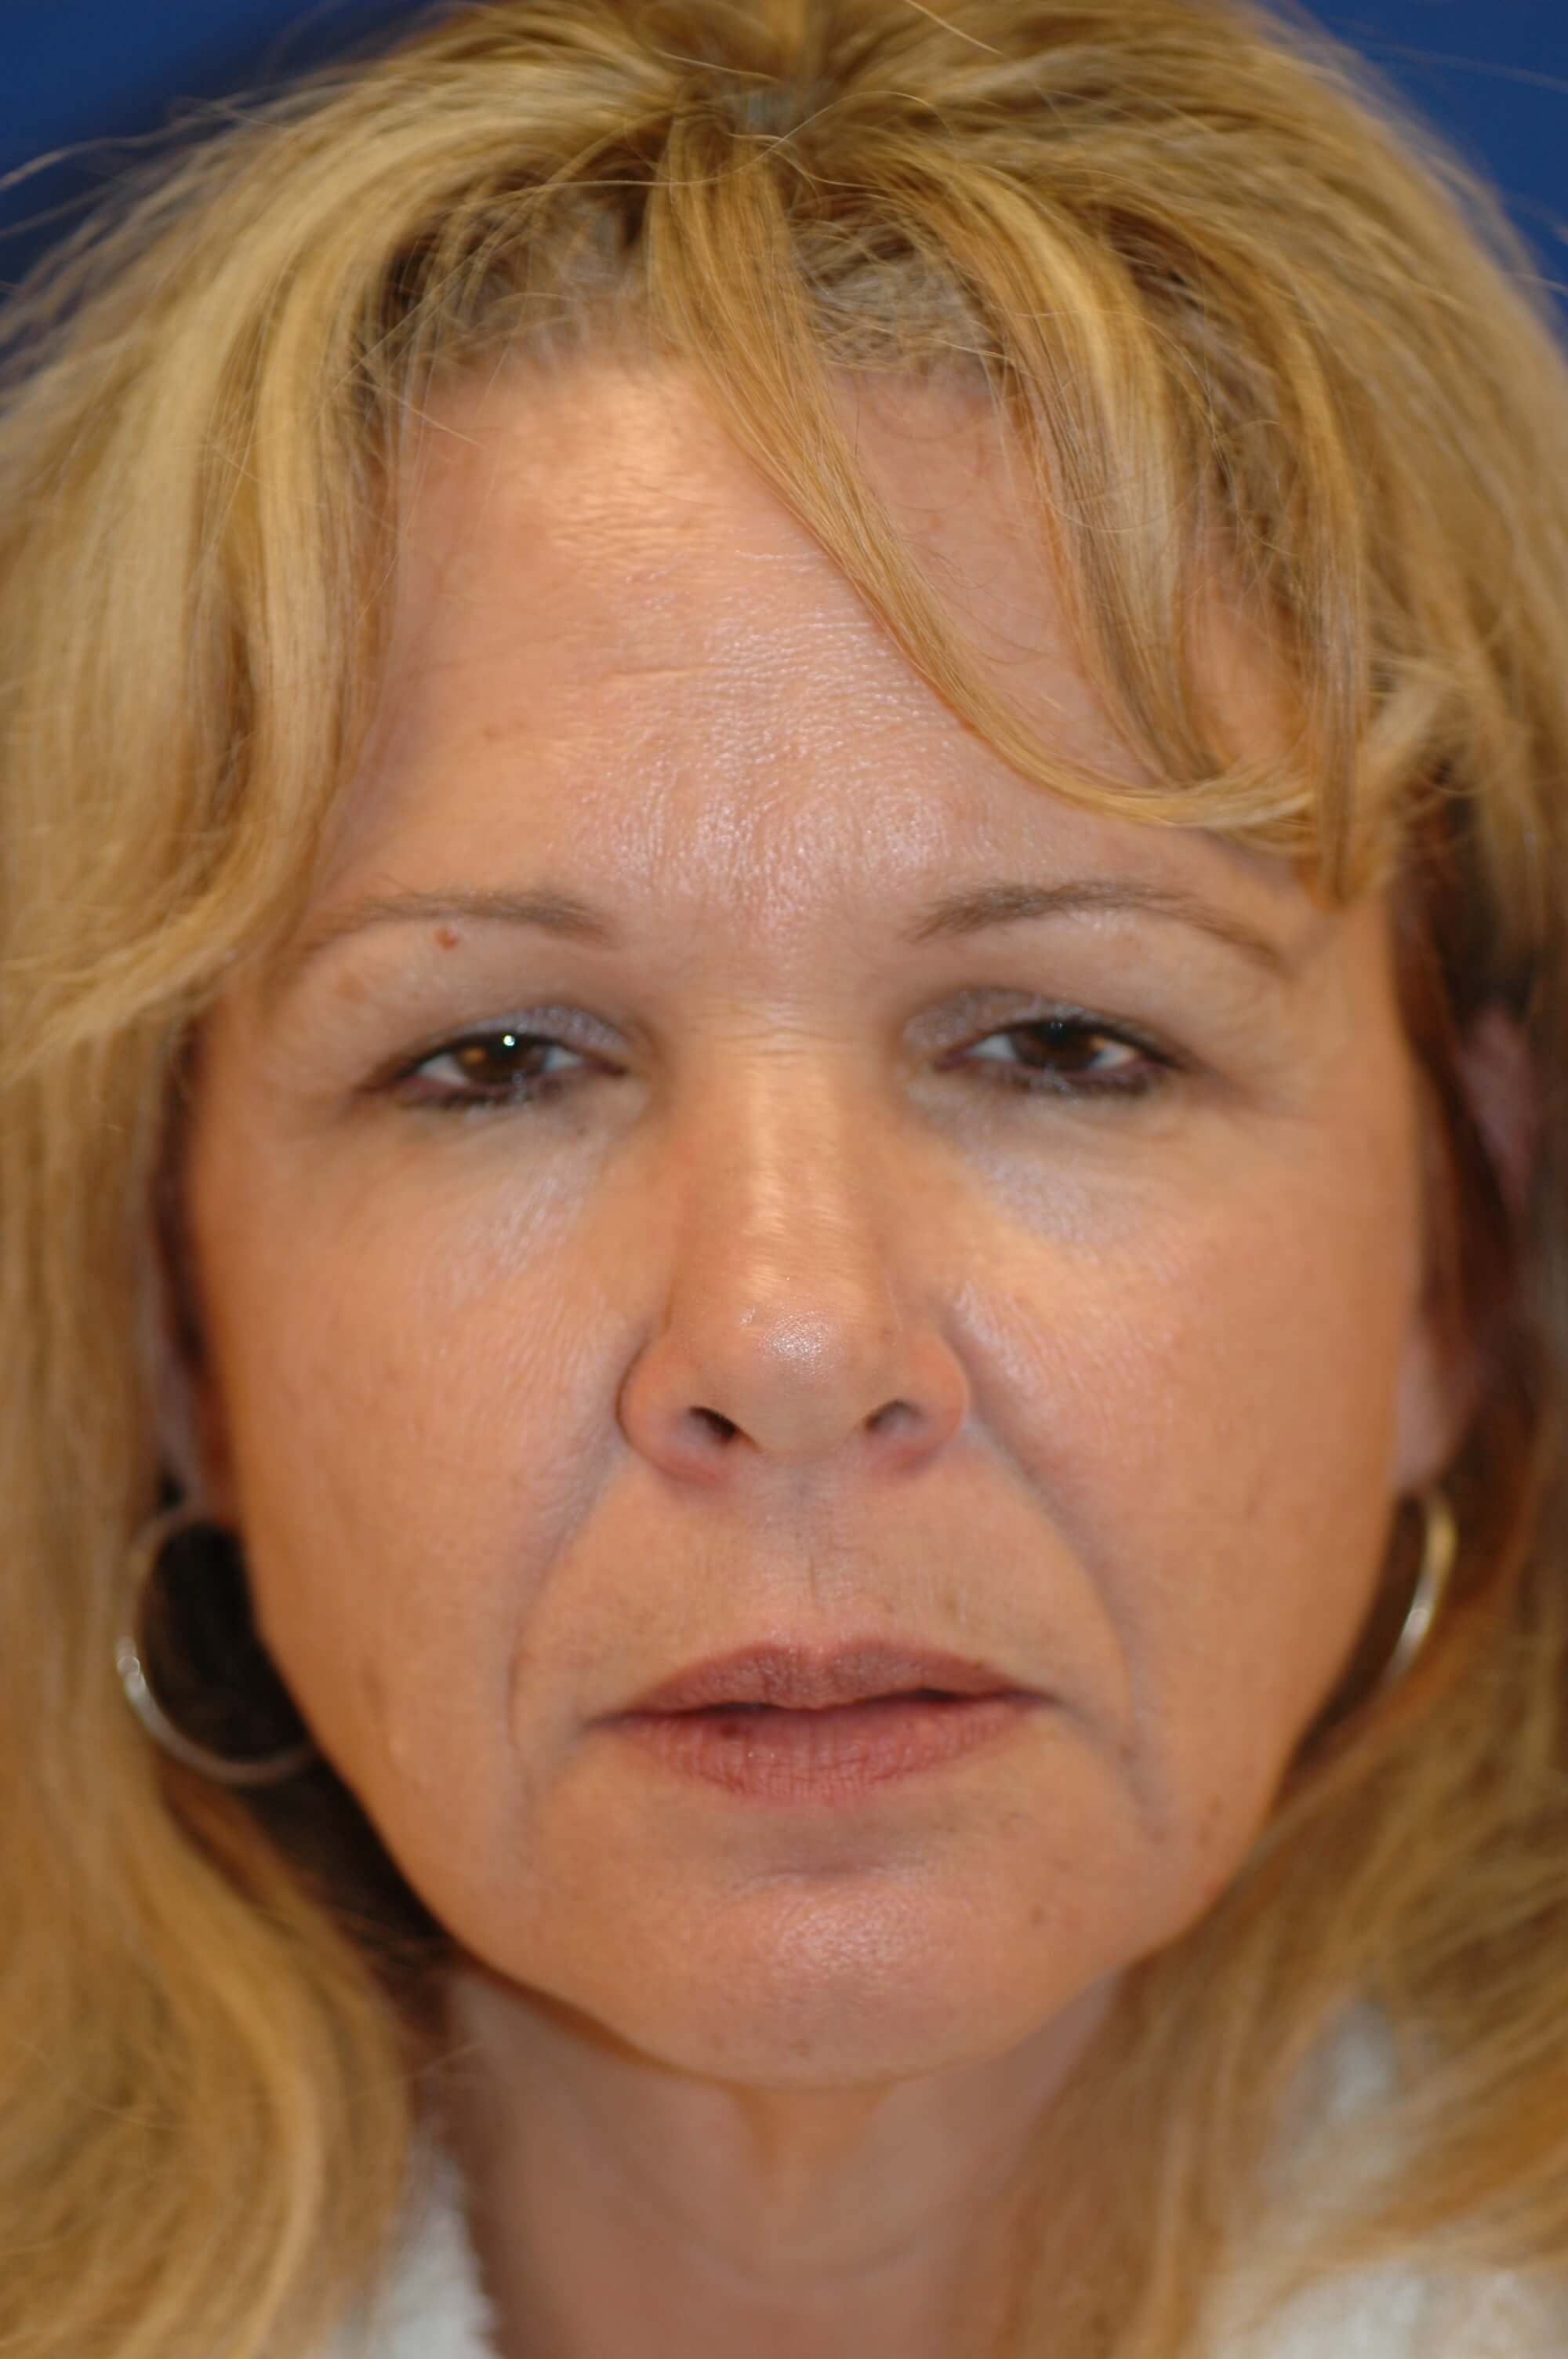 Newport Ptosis Repair and Brow Front View Before